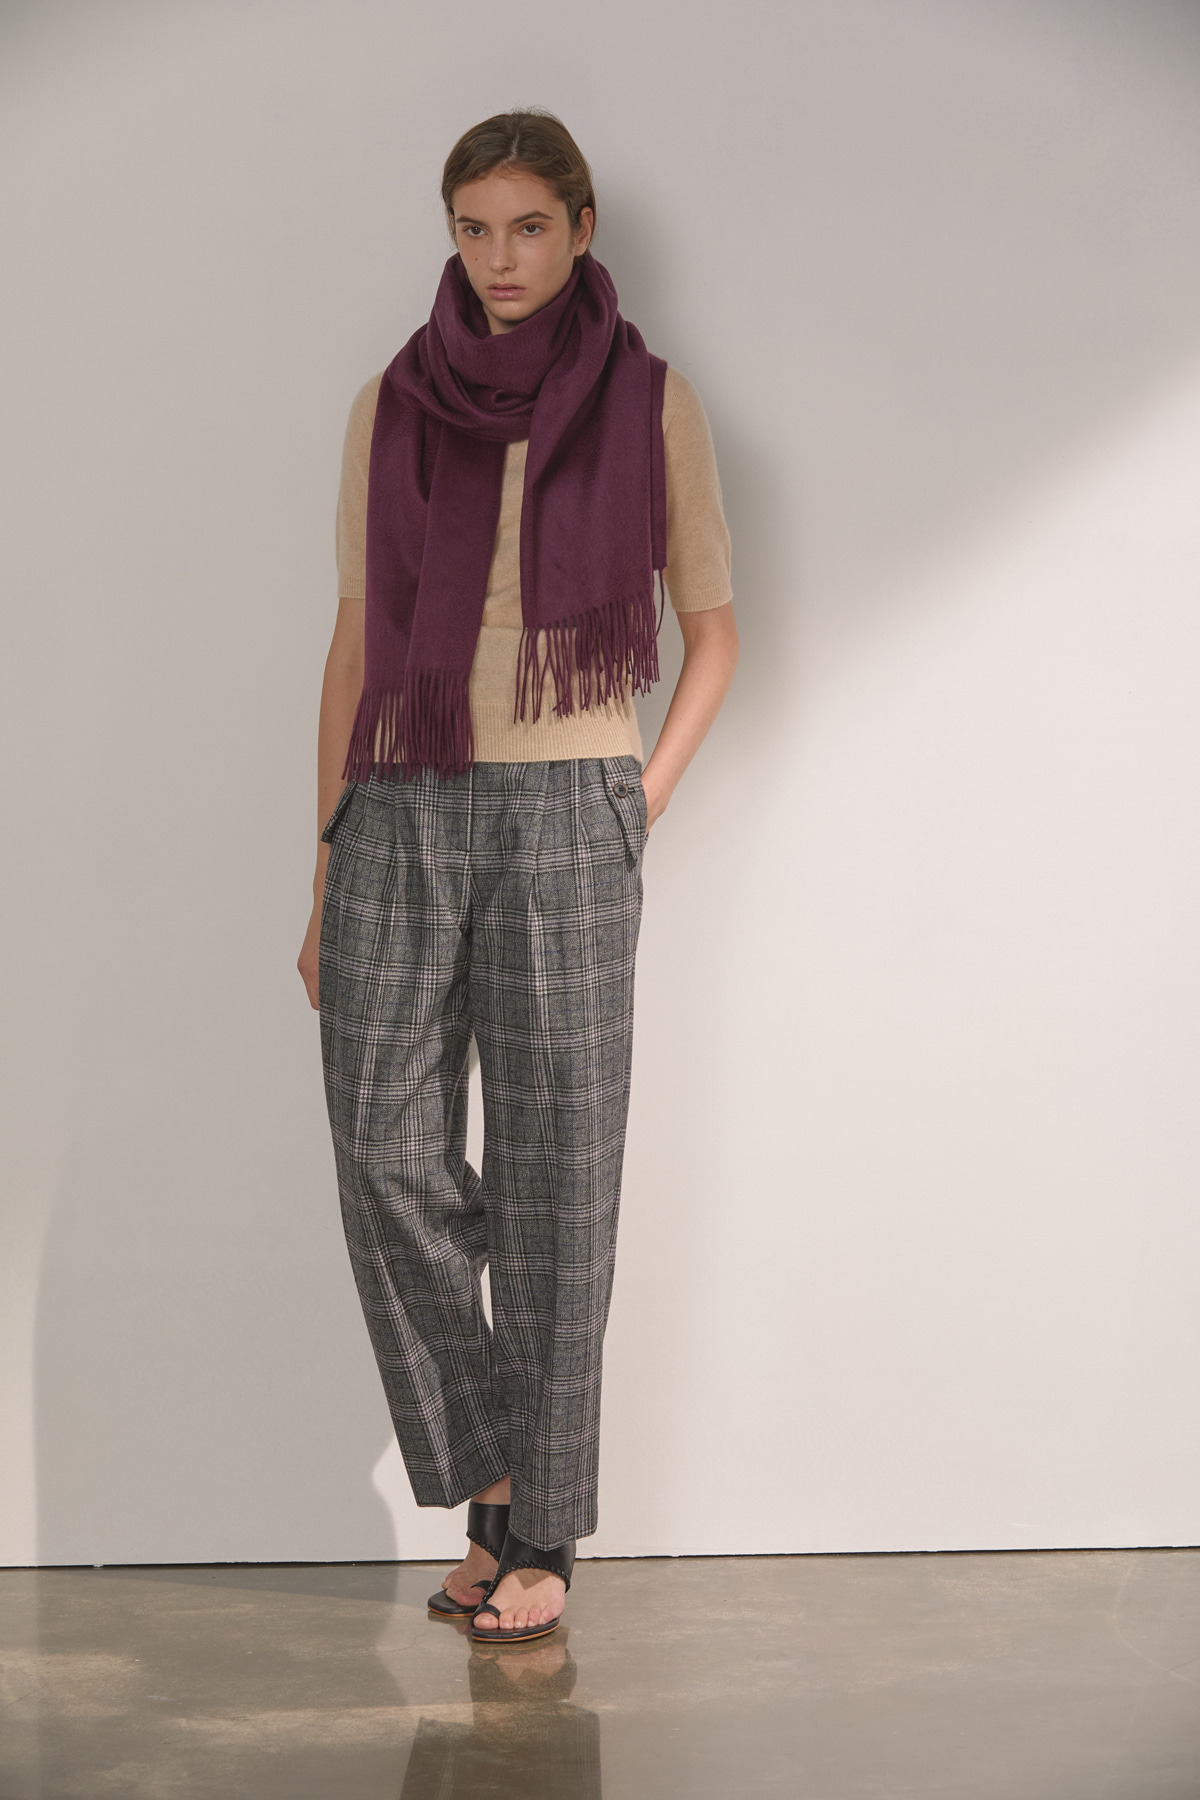 DEMERE WOOL HIGH-WAIST PINTUCK PANTS (CHECK GRAY)